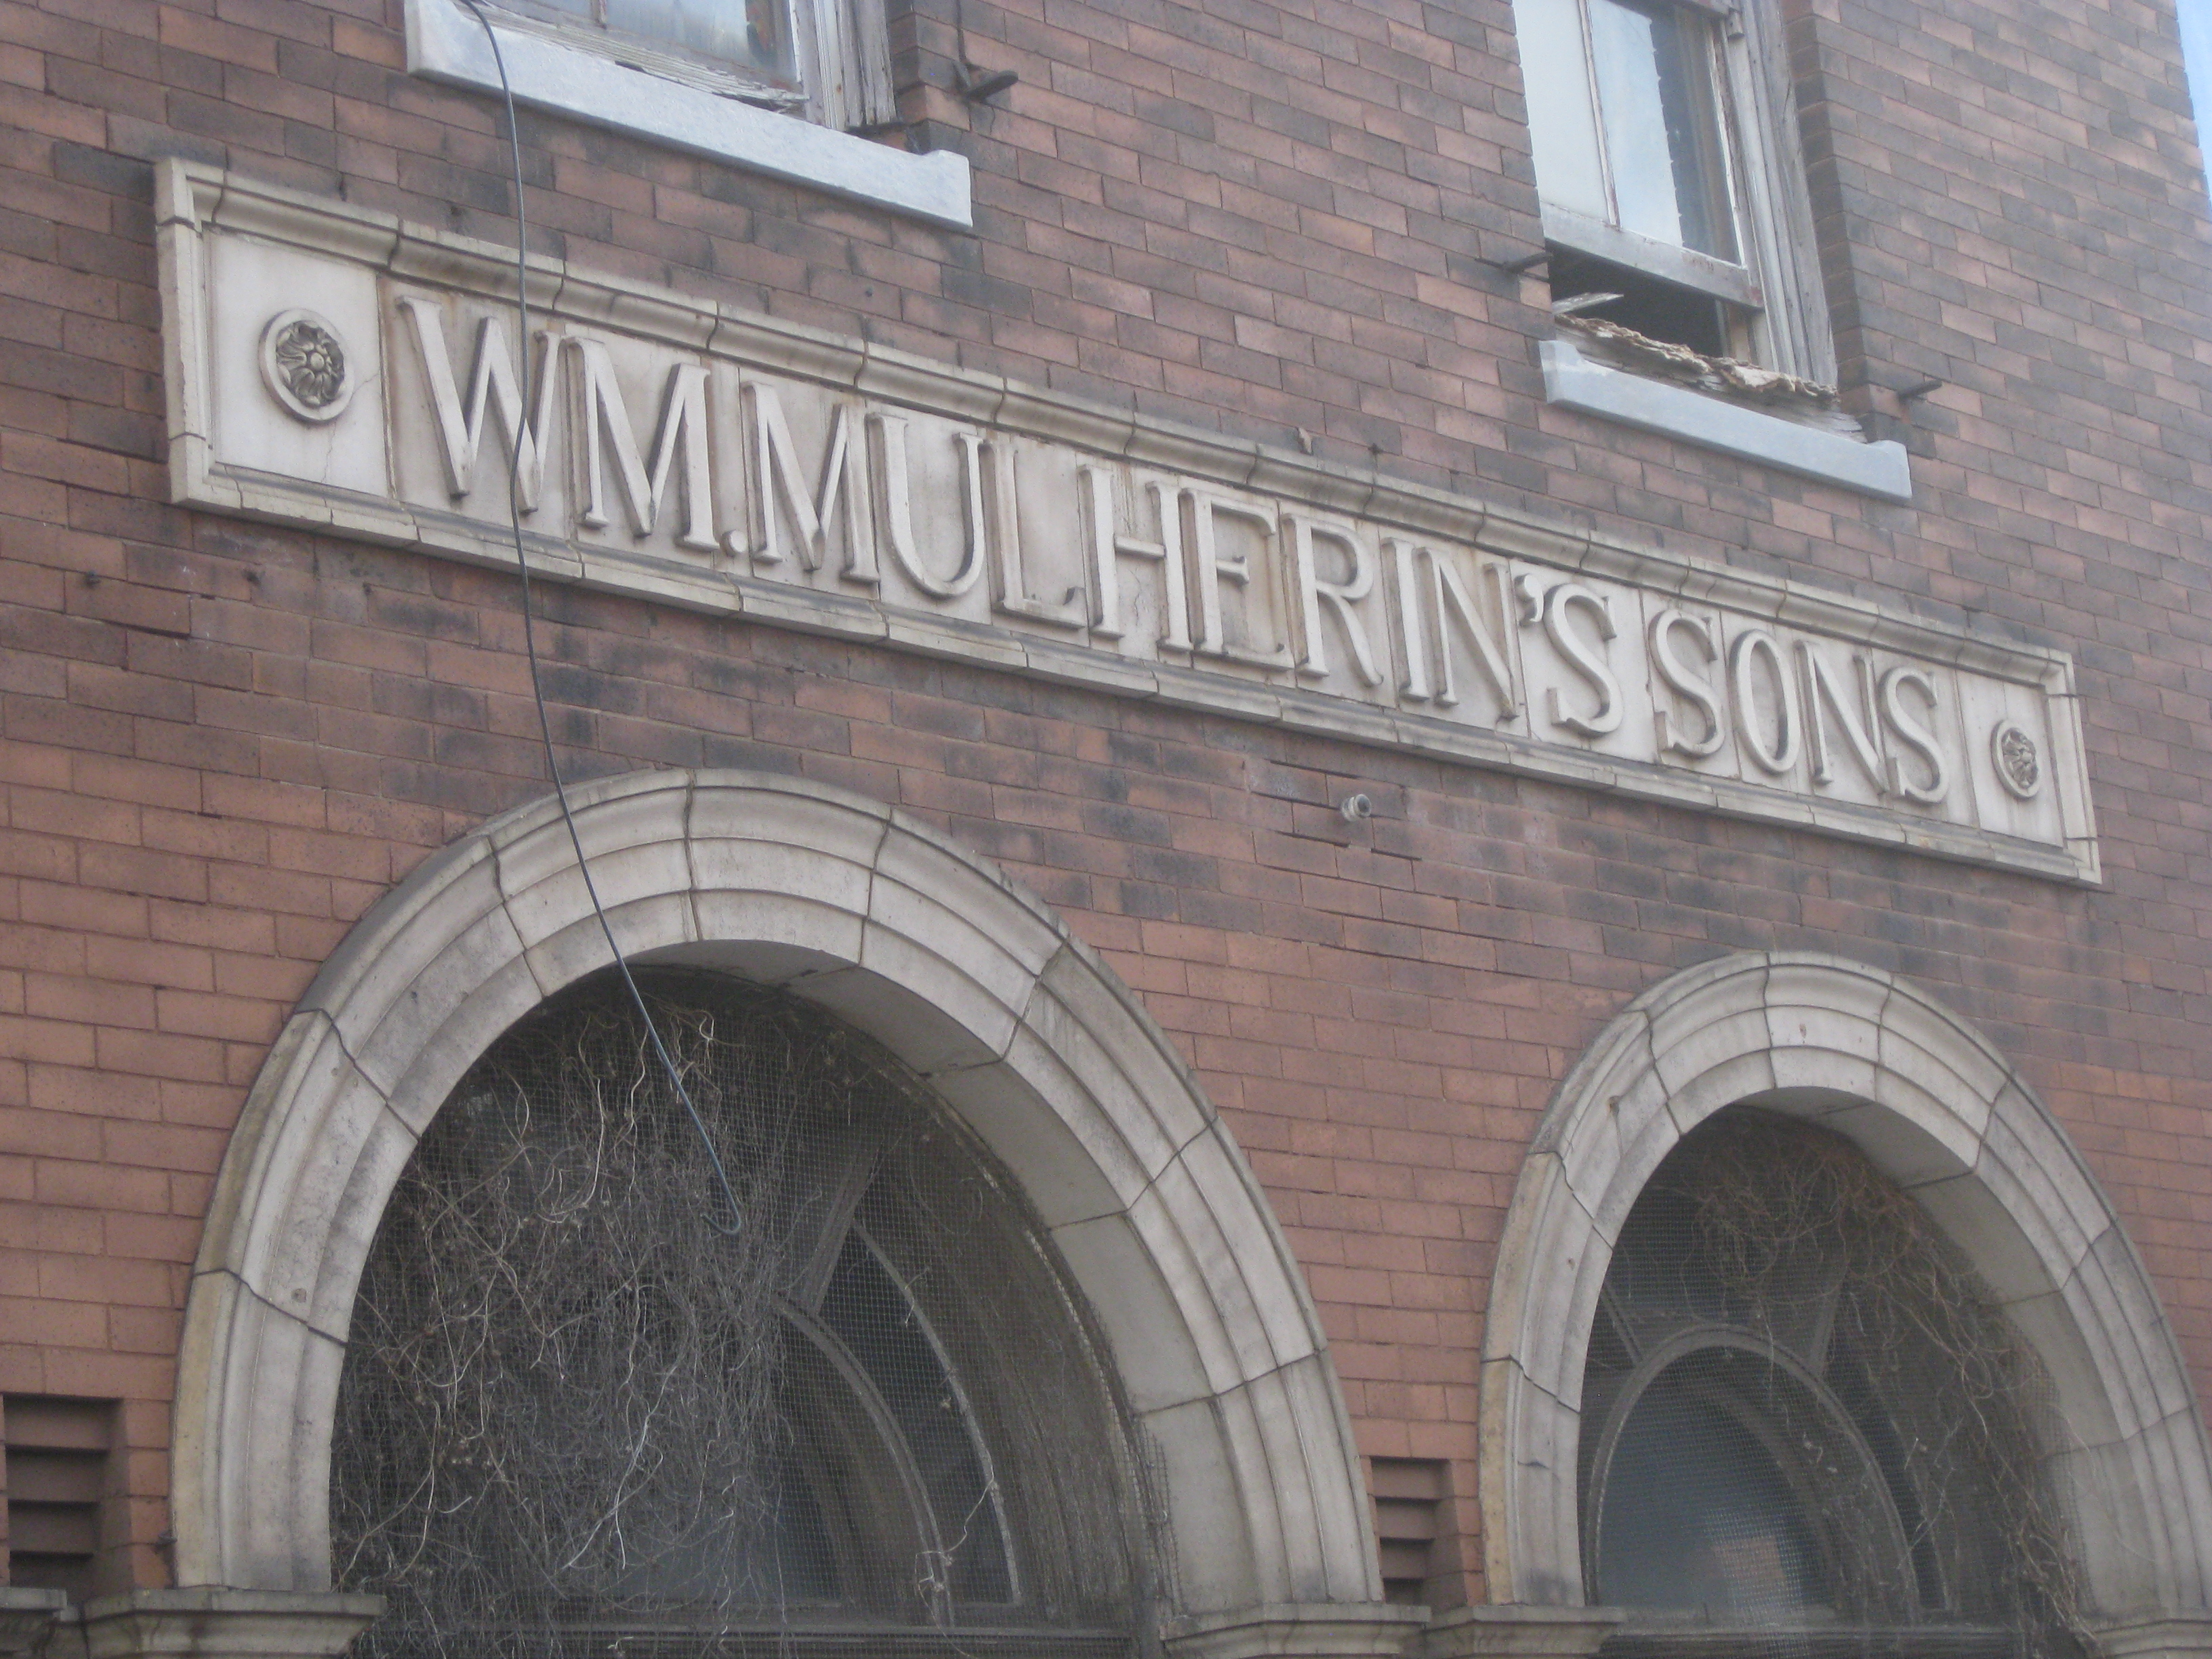 The long-vacant Wm. Mulherin´s Sons, 355 N Front St, Philadelphia, Pa. before it was refurbished in the mid-2010s.